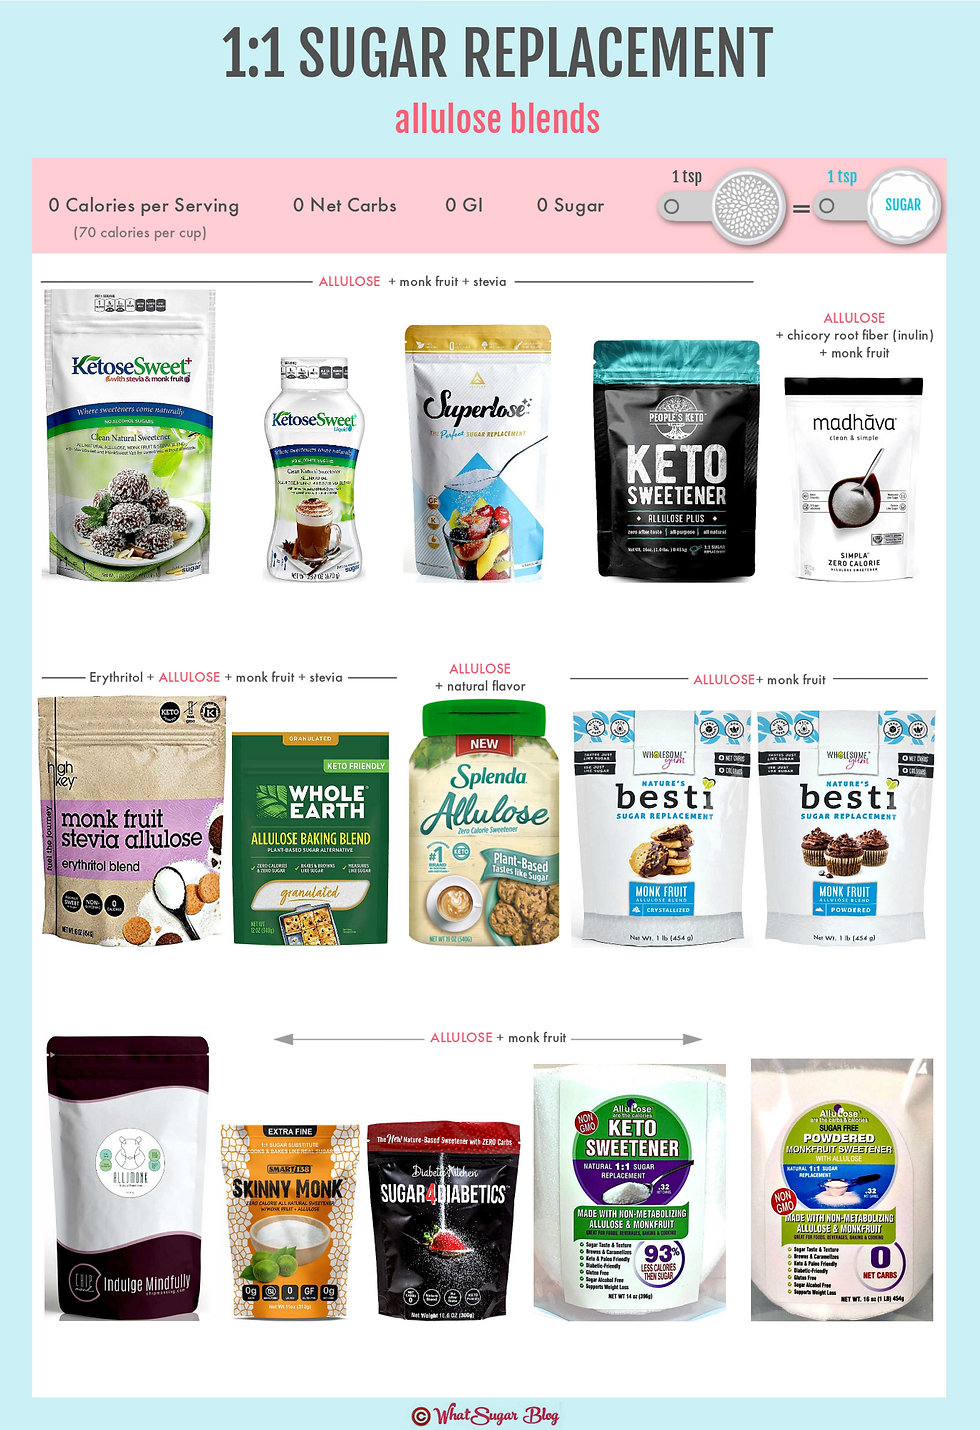 Brands of 1:1 Sugar Replacement with All